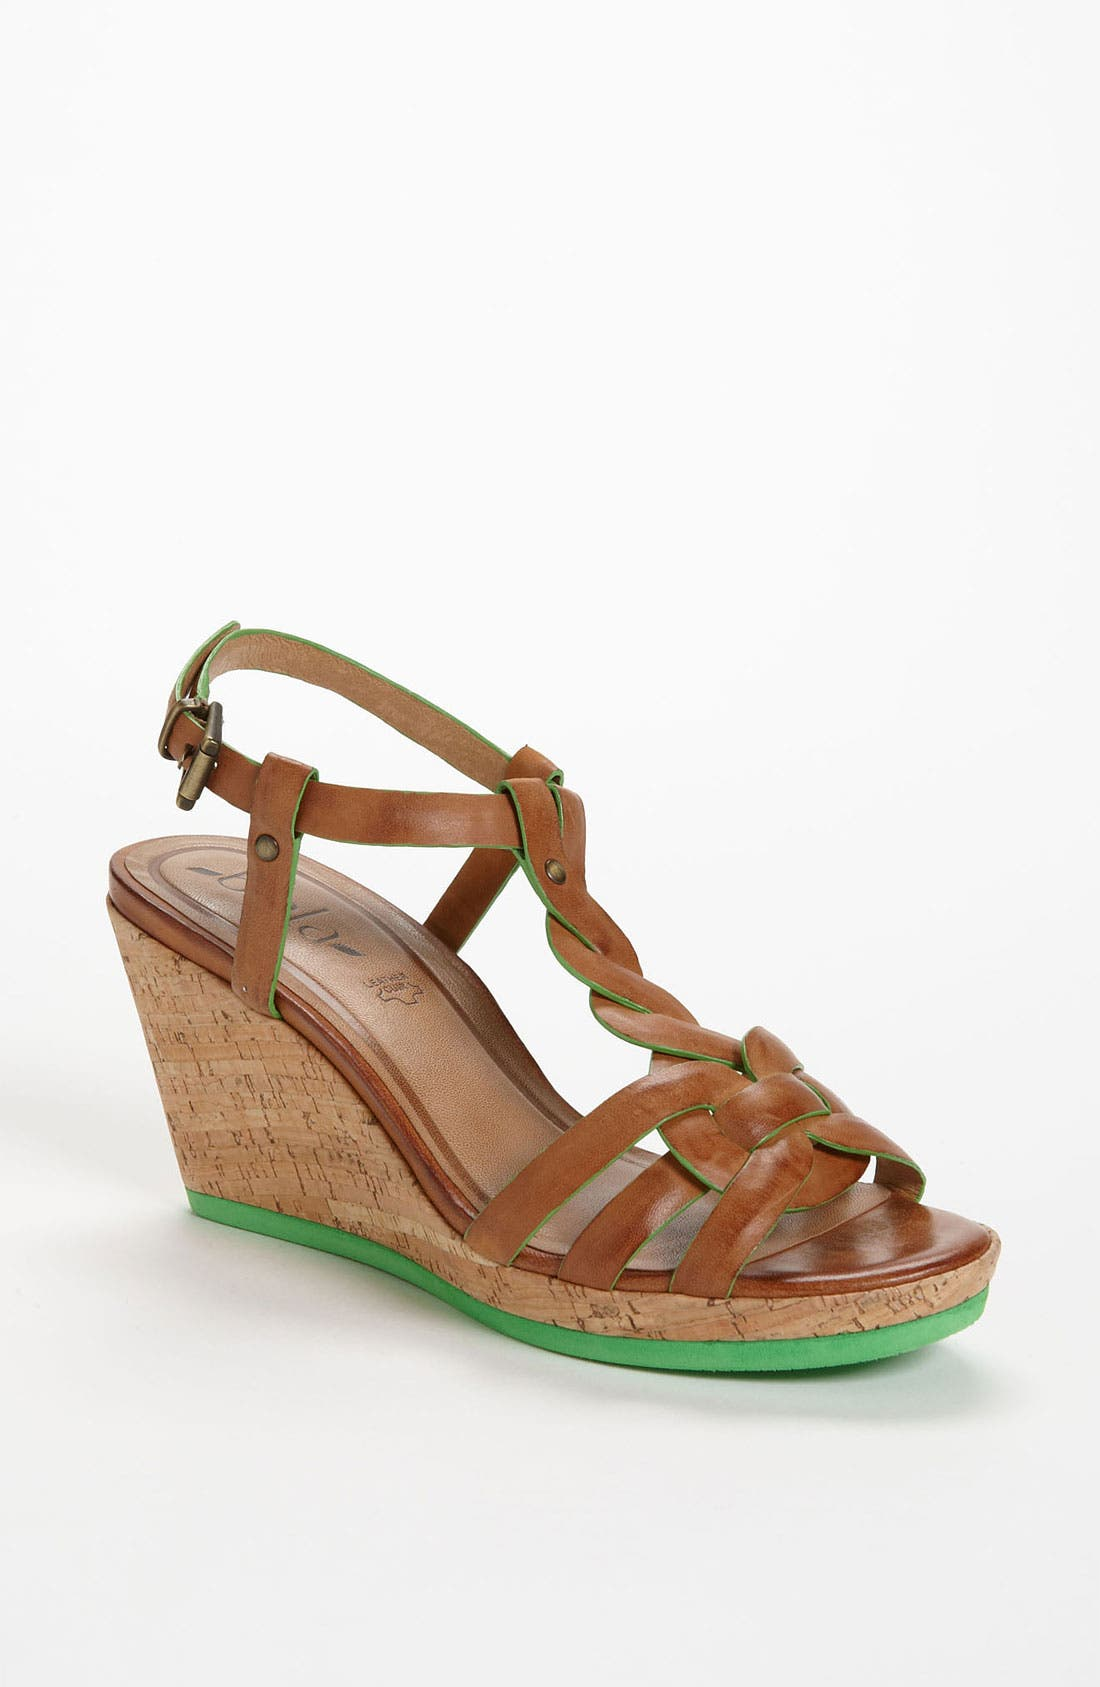 Main Image - Biala 'Jillian' Wedge Sandal